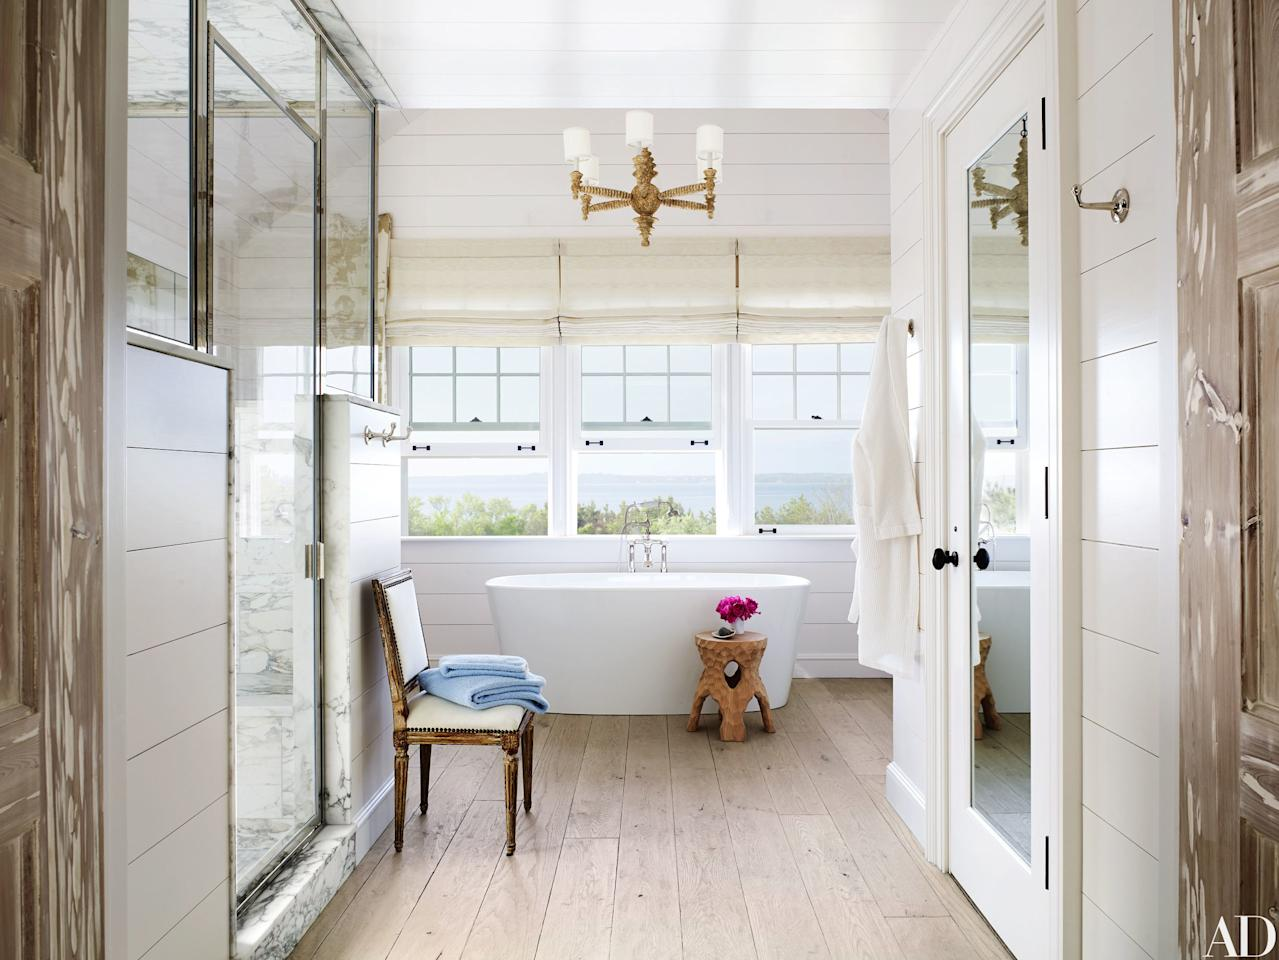 """The master bath of a <a href=""""http://www.architecturaldigest.com/story/southampton-beach-house-david-netto-david-hottenroth?mbid=synd_yahoo_rss"""">Southampton, New York, retreat</a> by interior designer David Netto and architect David Hottenroth is pure luxury. We are so ready to soak in the tub while listening to the waves."""